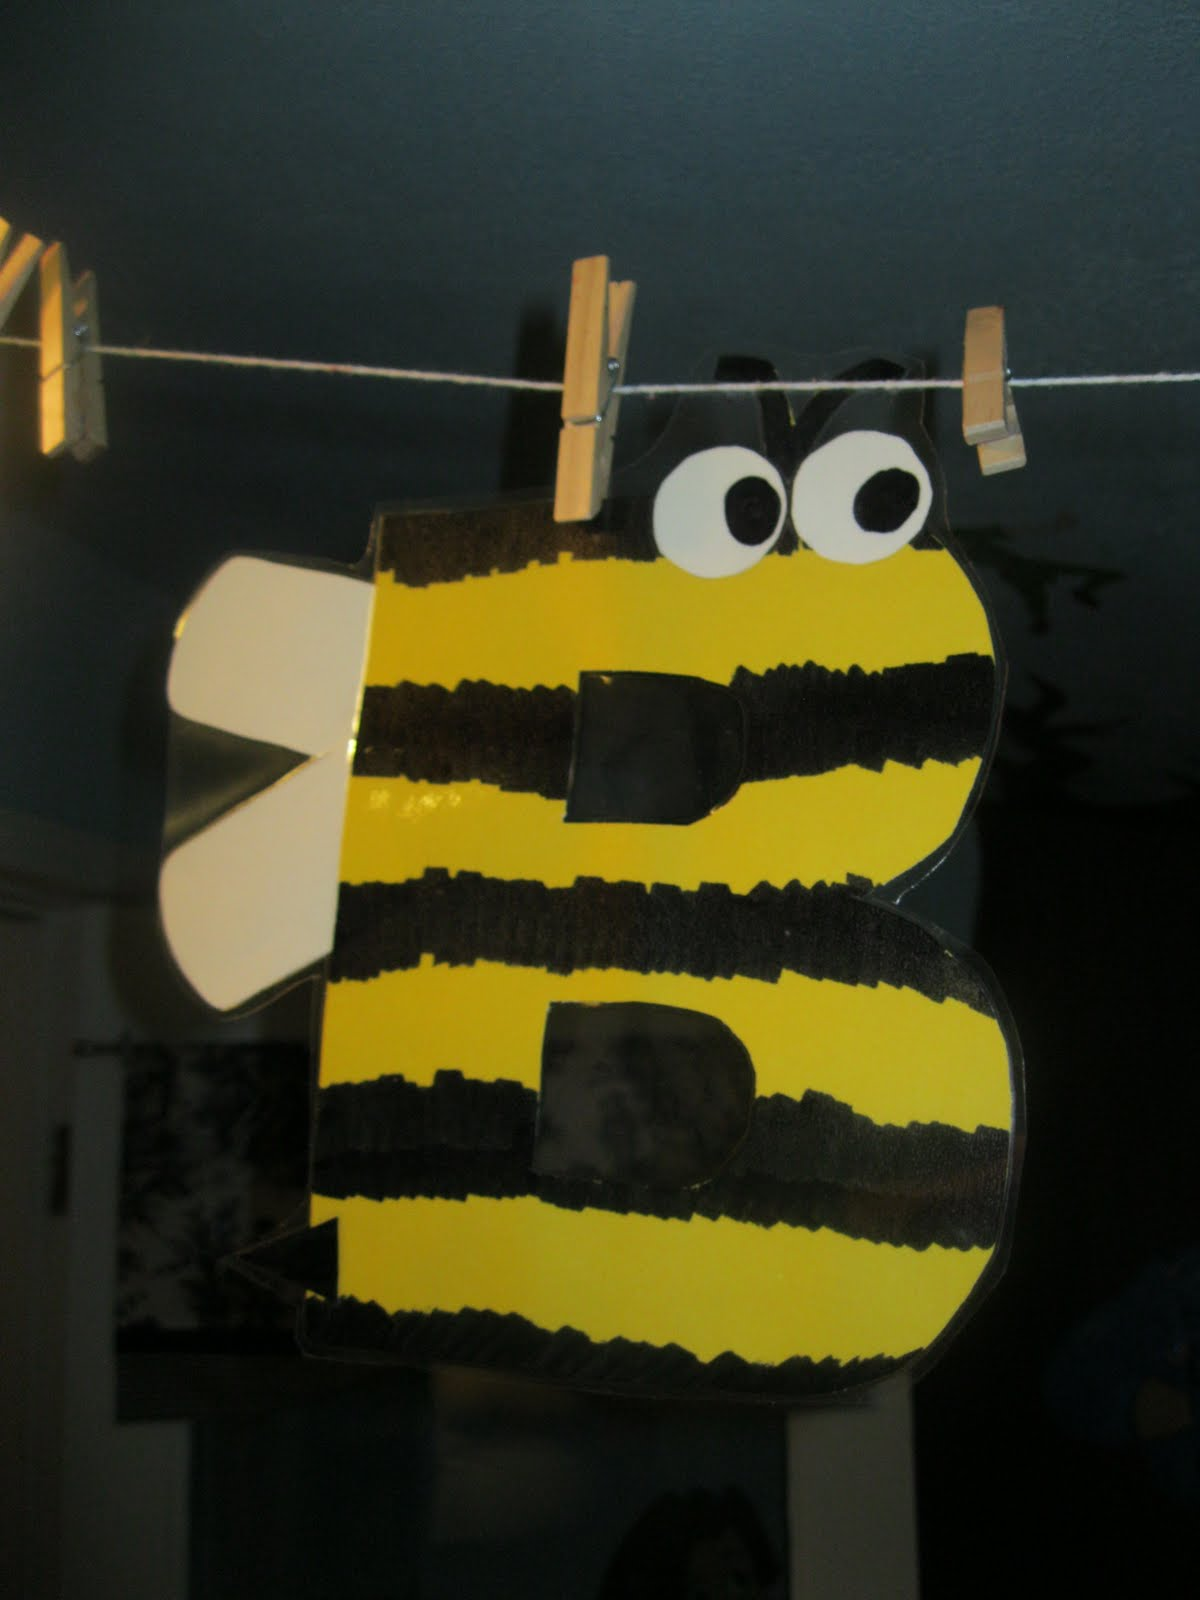 Letter B Art Projects for Preschoolers - The Measured Mom